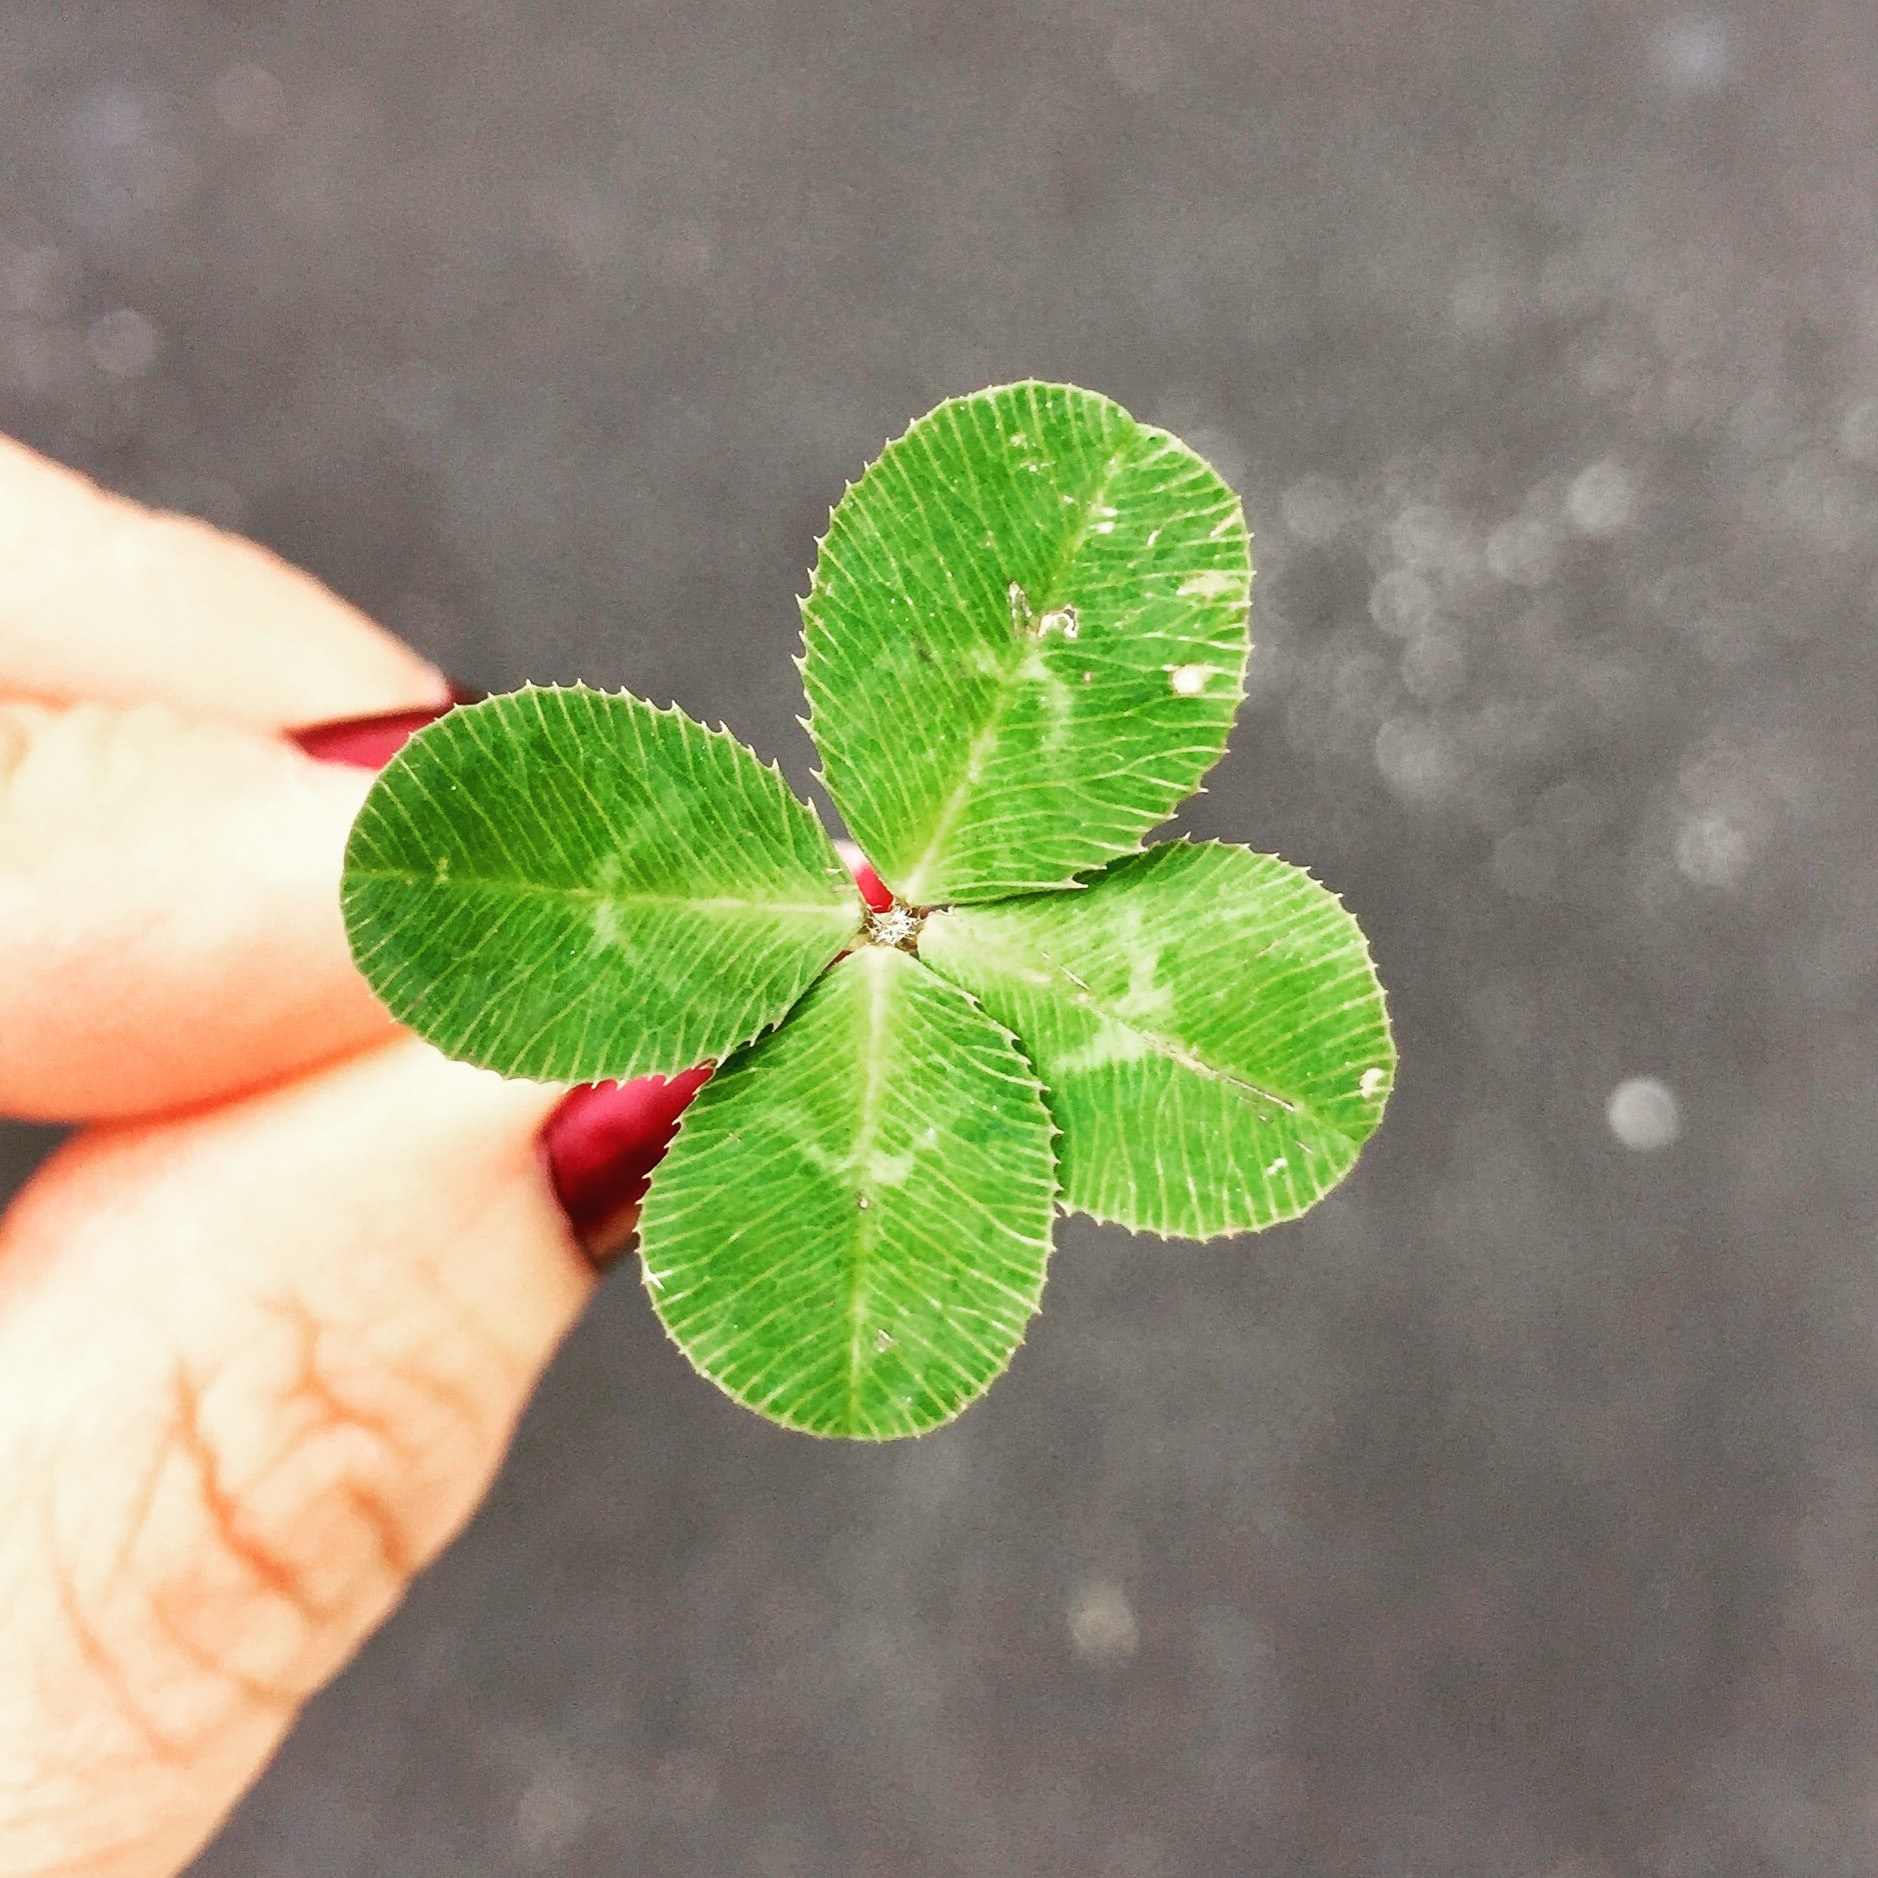 Lucky you #challenged stories